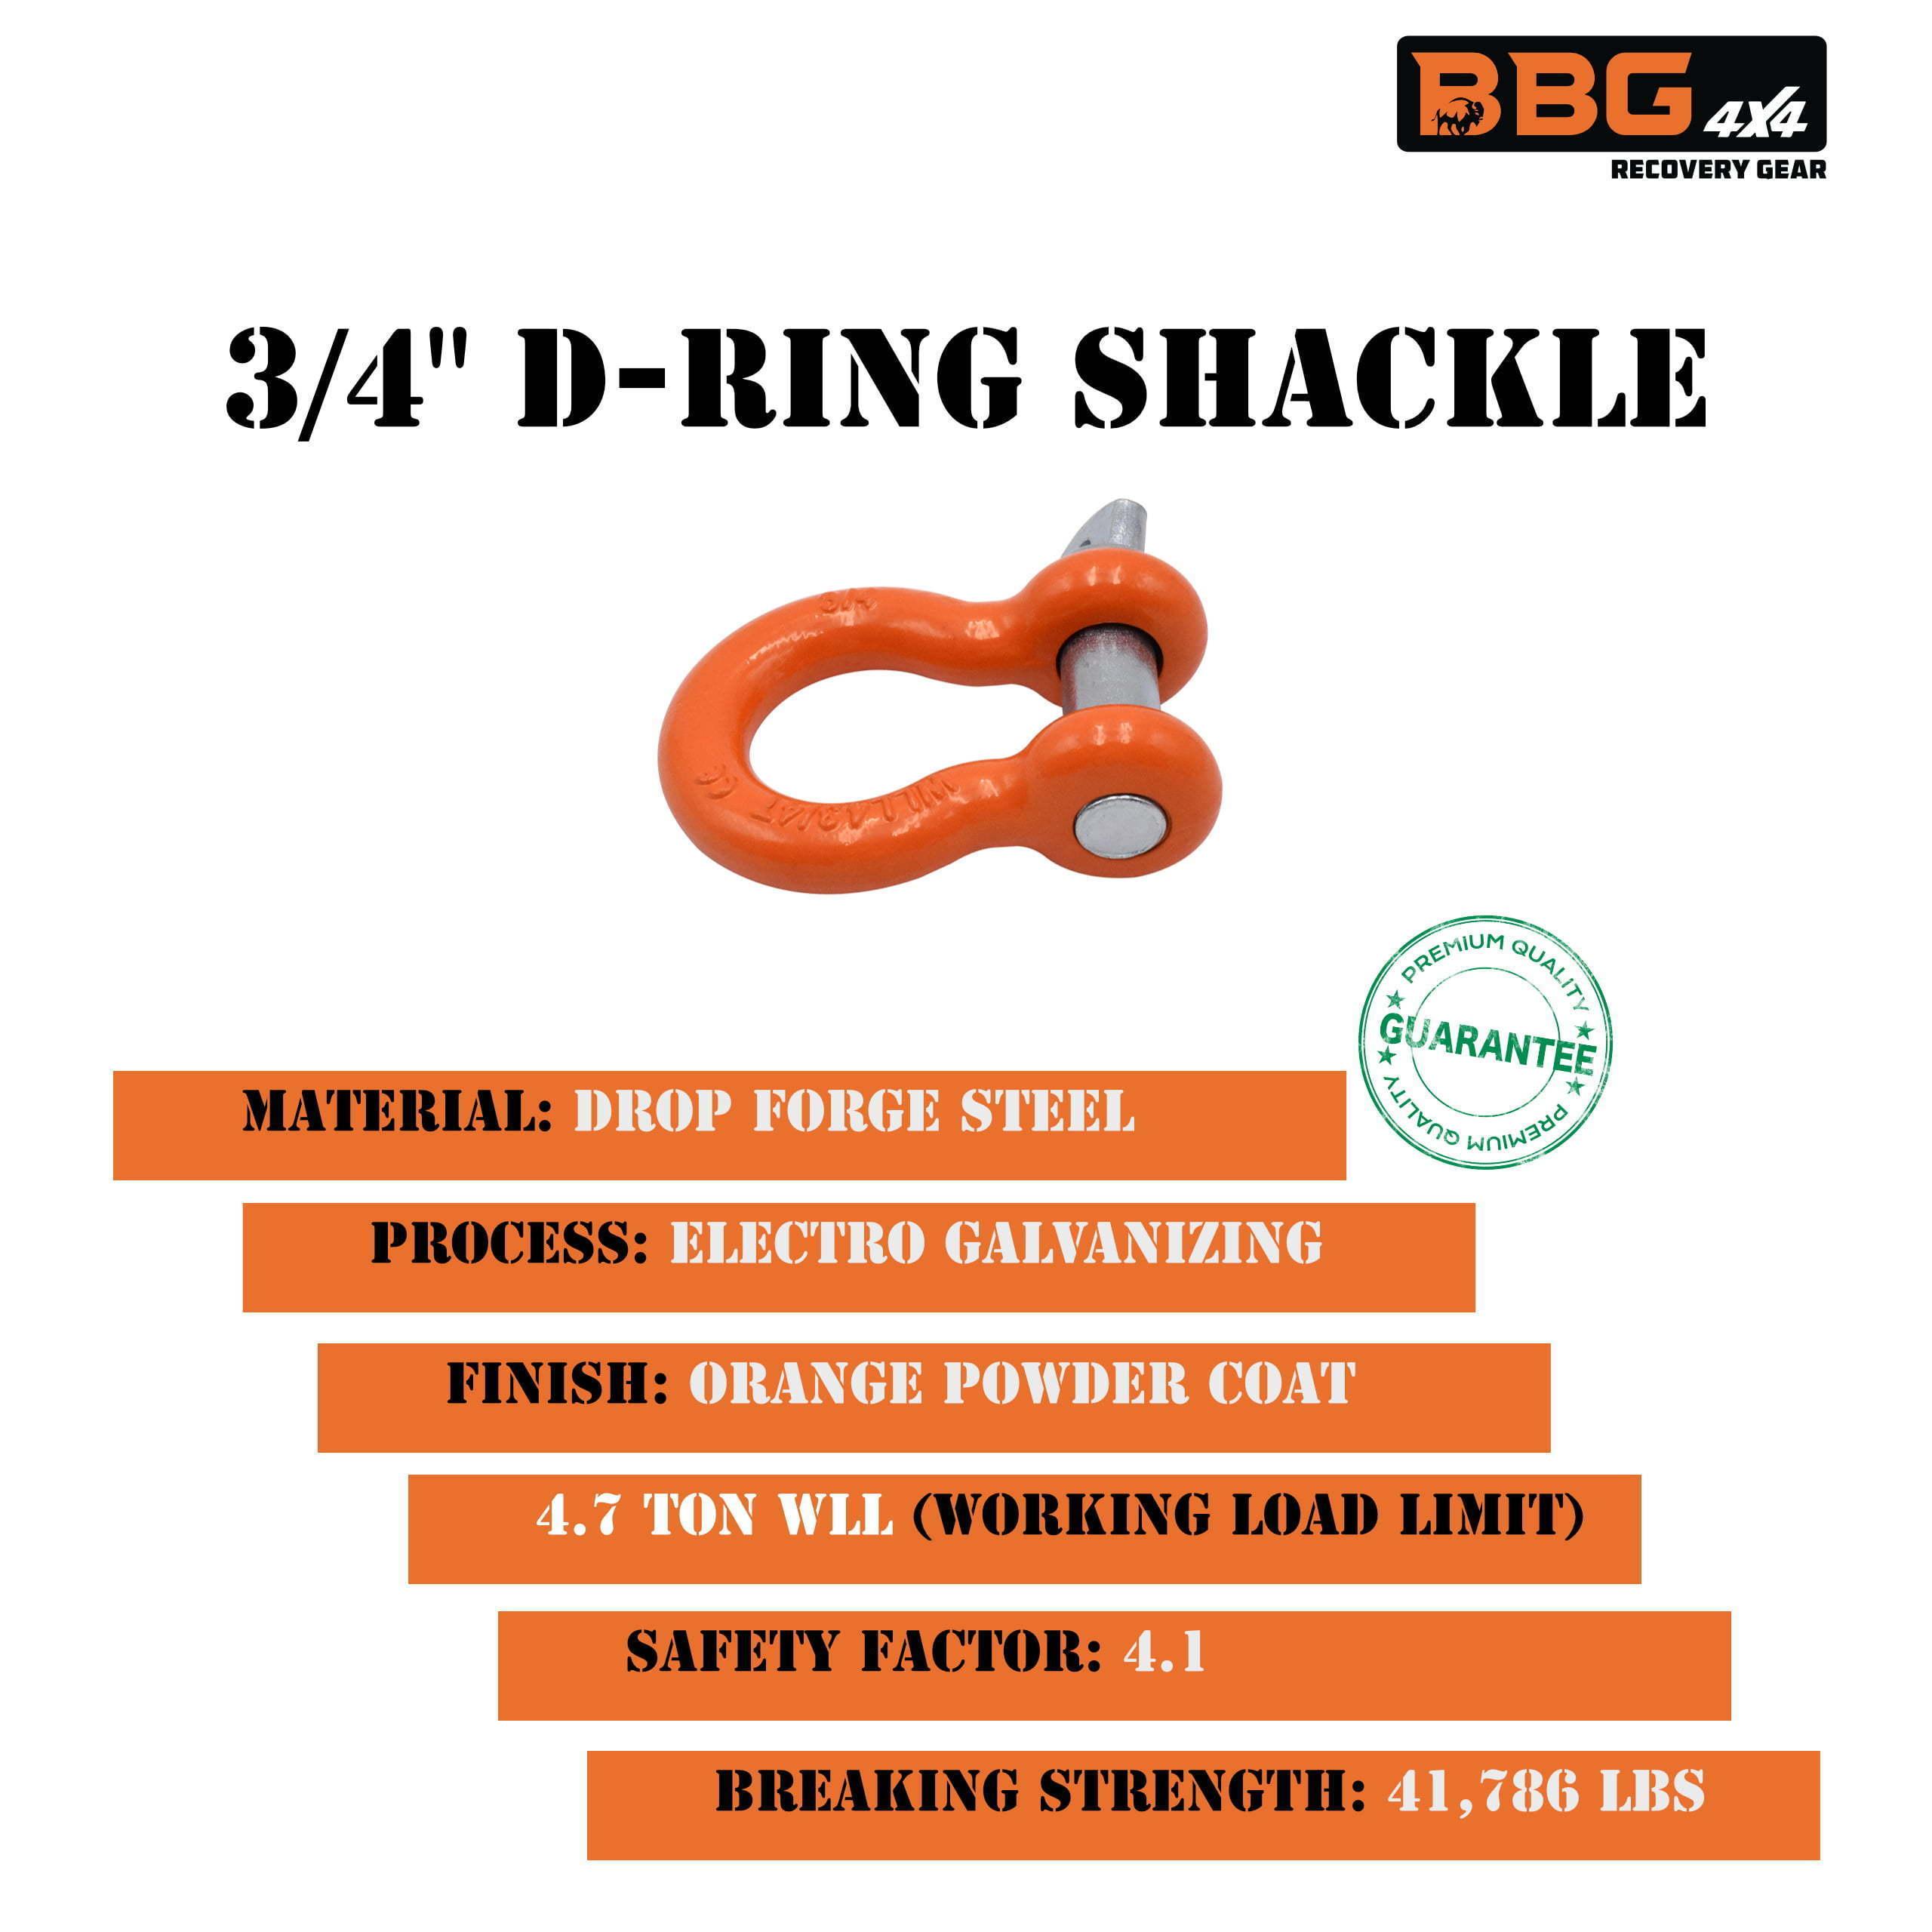 Free Storage Bag and Wrap Tie BBG4x4 Heavy Duty Recovery Tow Strap 30ft x 3 Inch Tow Strap + 1 Hitch Receiver + 2 Shackles Recovery Kit for Emergency Towing and Offroad